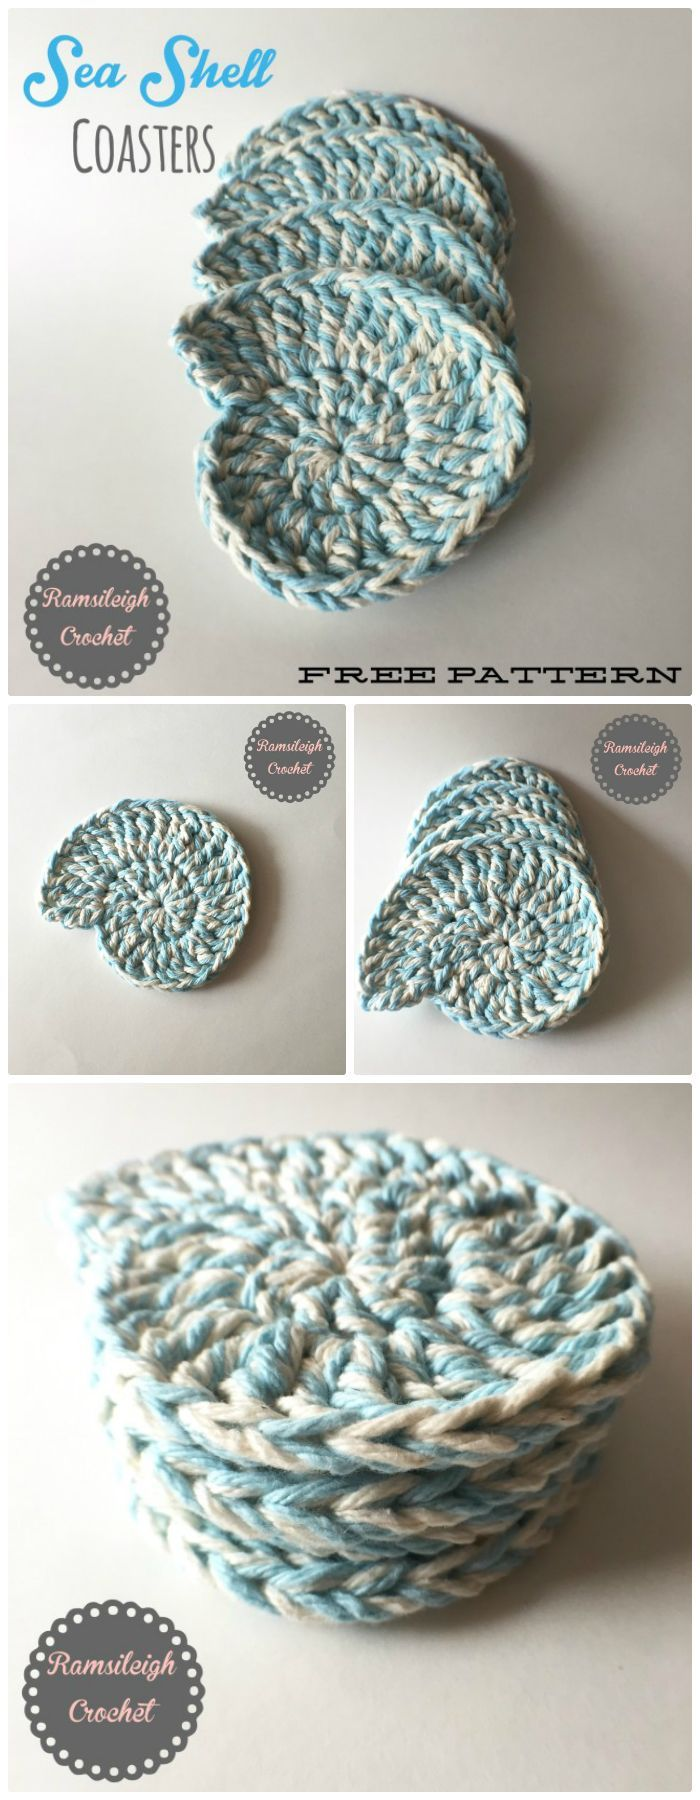 70 Easy Free Crochet Coaster Patterns For Beginners Crafty Crap